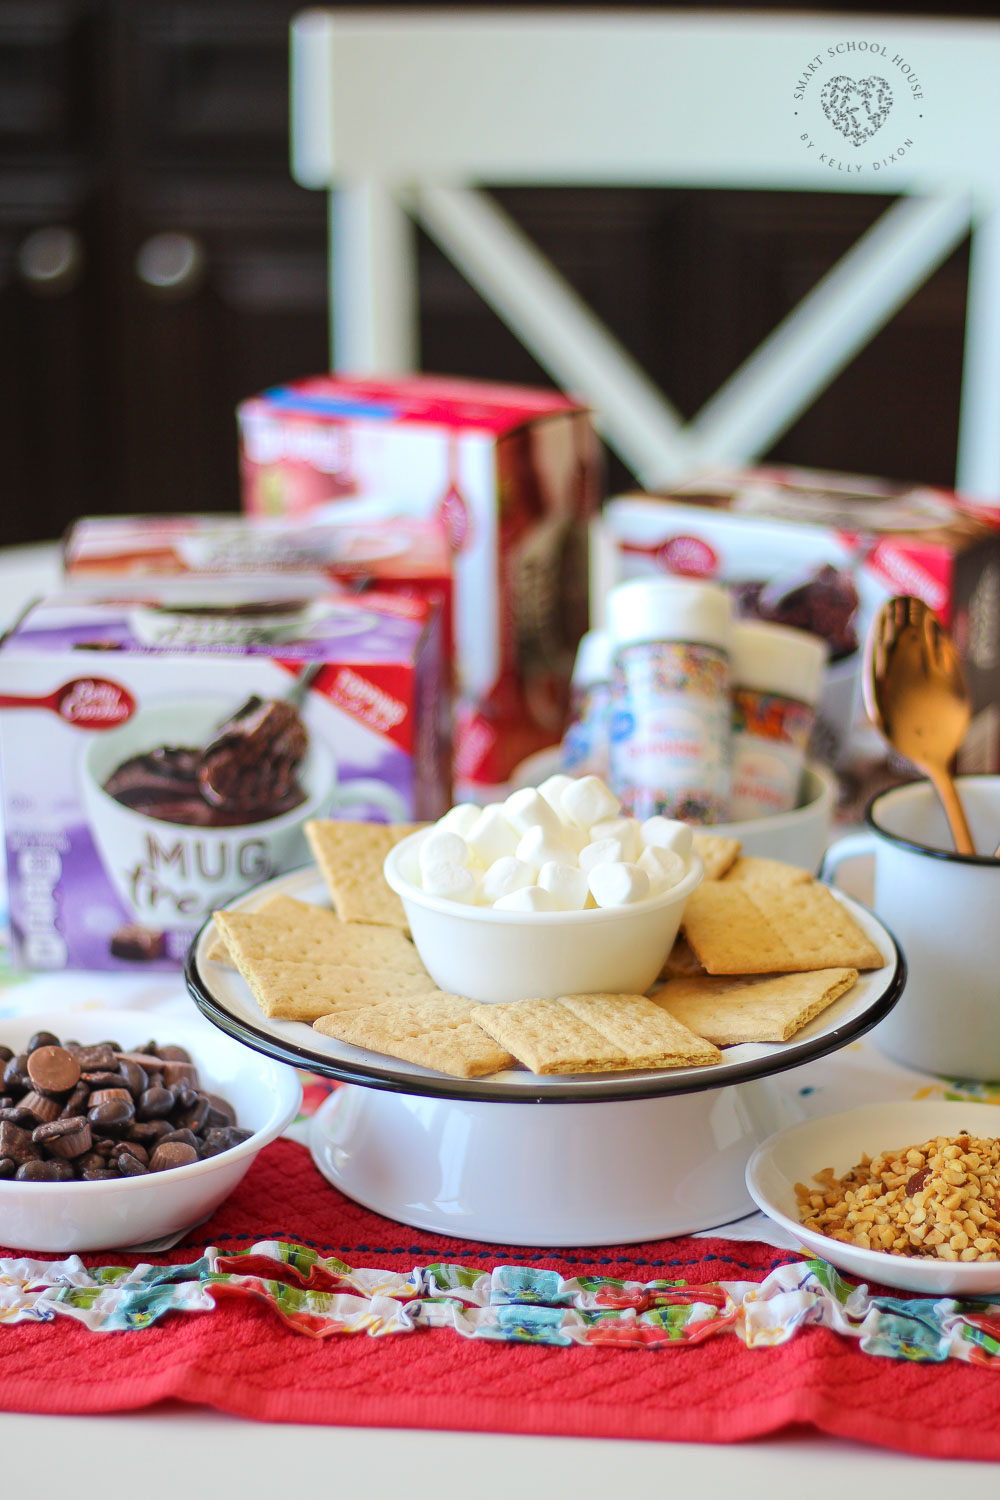 No Bake Microwave Mug treats. Perfect for a quick dessert, snacks, or after school fun.